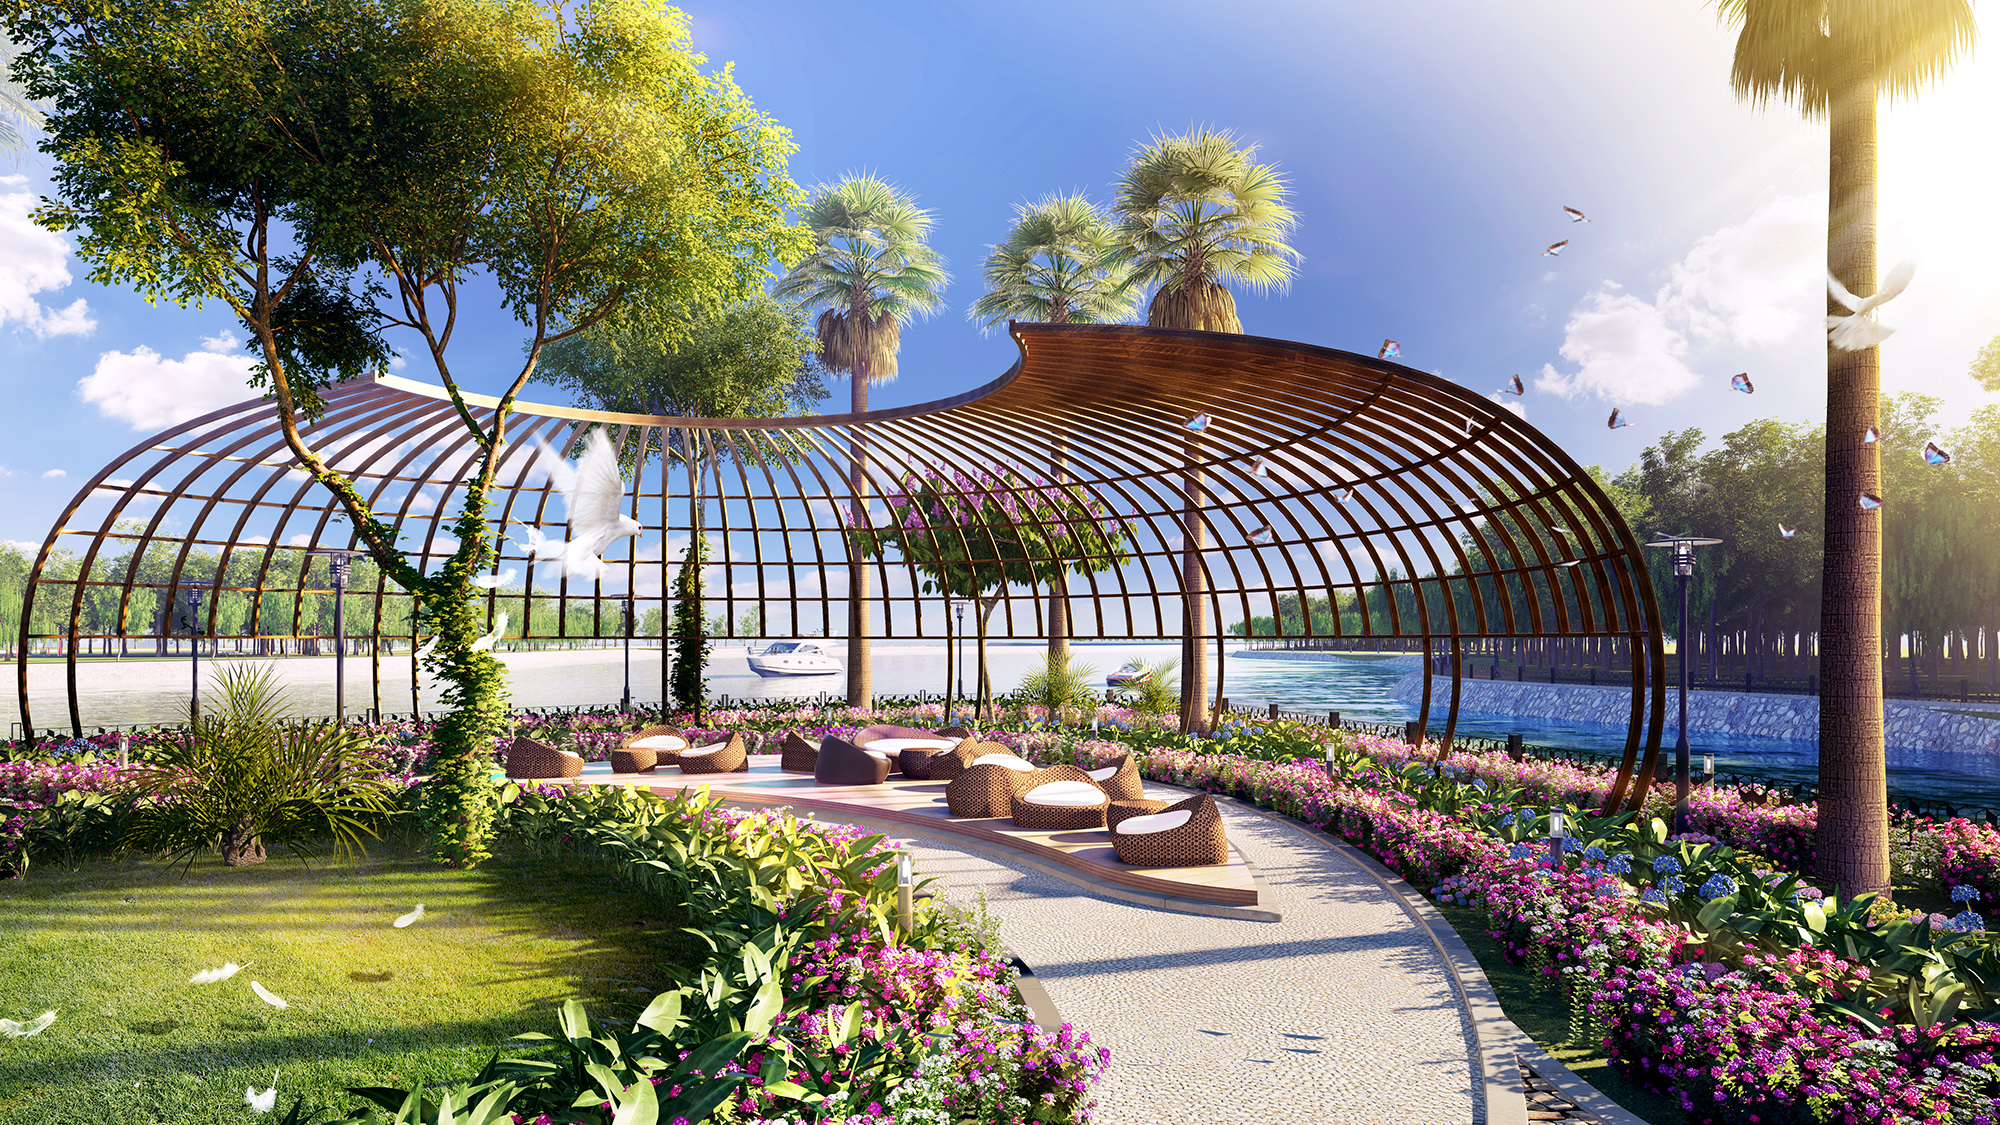 Outdoor area - artist's impression